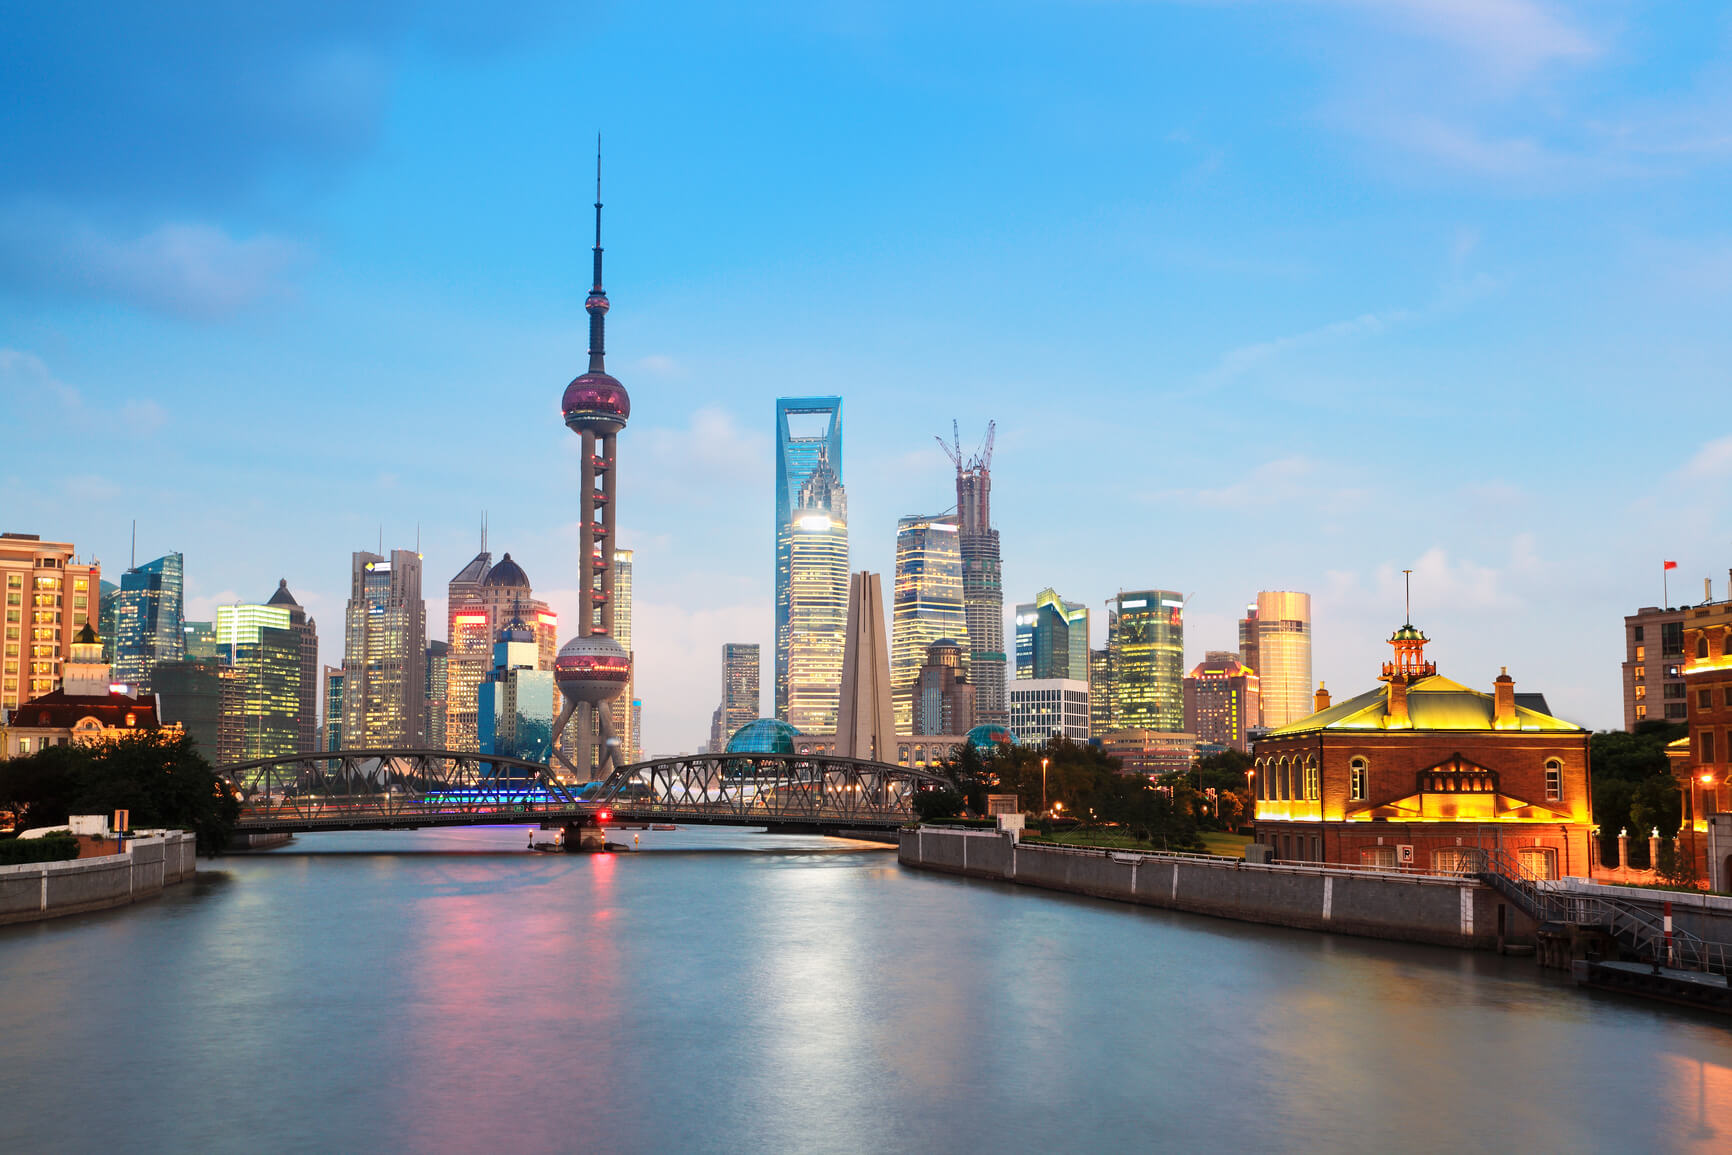 Berlin, Germany to Shanghai, China for only €376 roundtrip